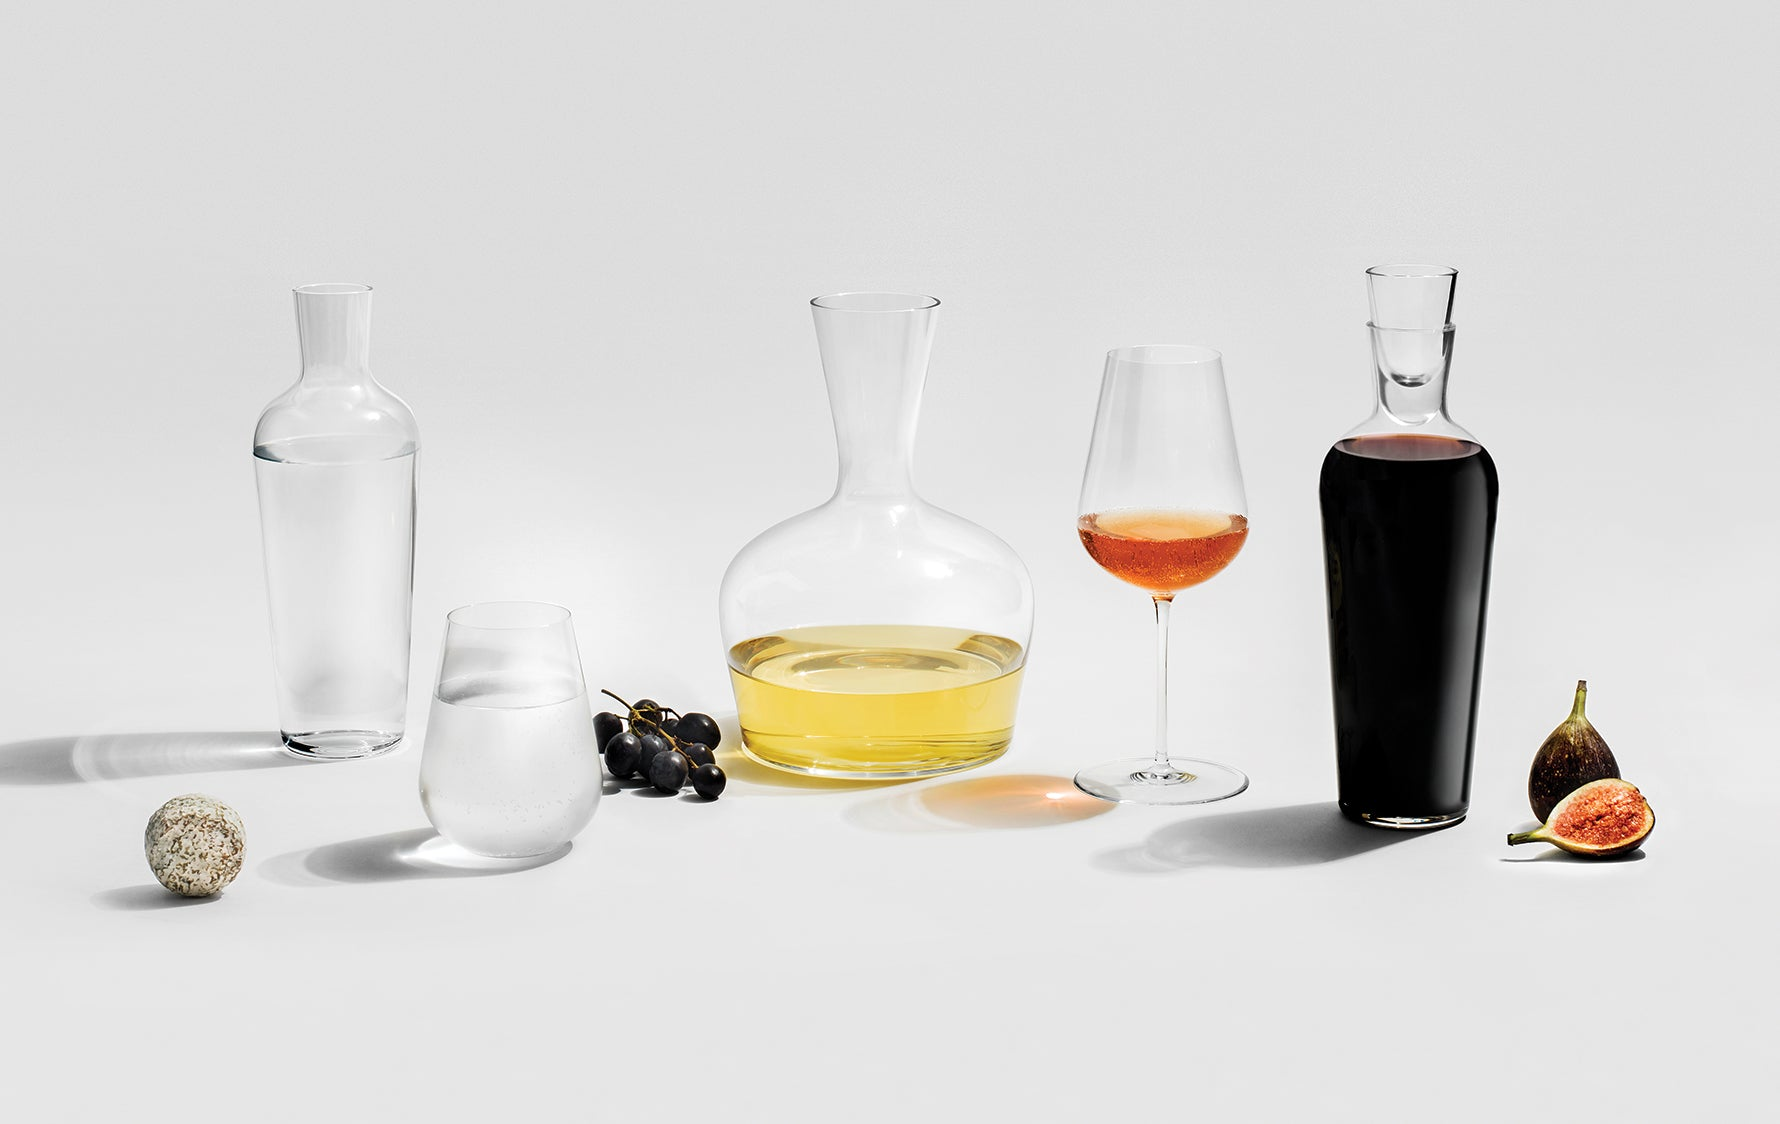 What is the Difference Between Carafes & Decanters? - LuxDeco.com